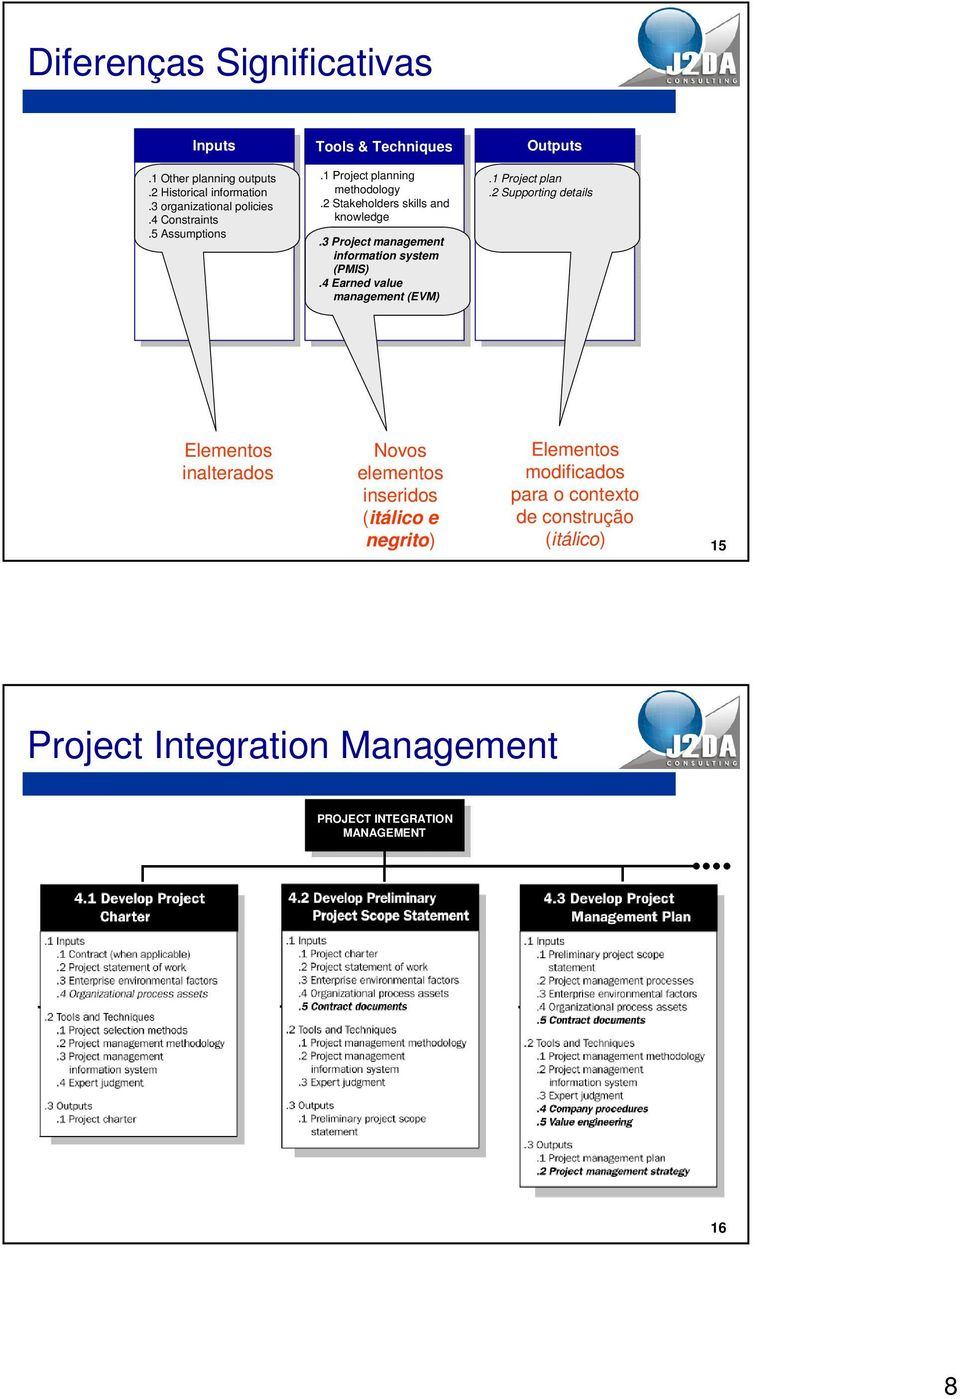 3 Project management information system (PMIS).4 Earned value management (EVM).1 Project plan.